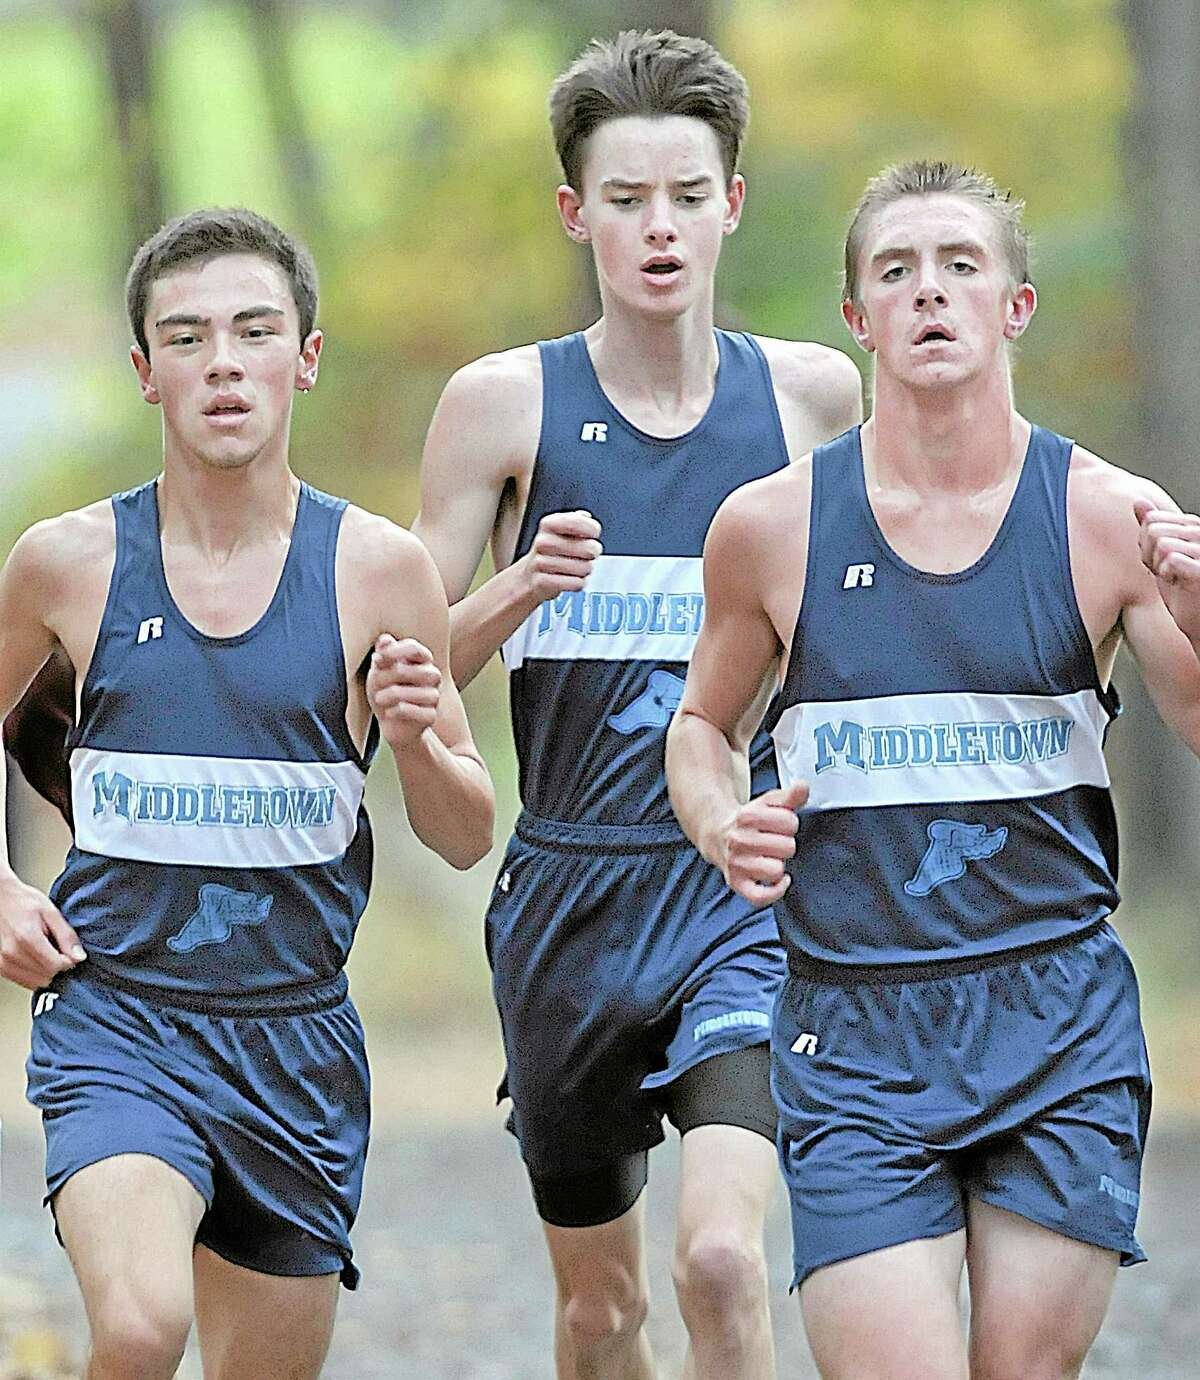 Middletown distance runners, Mateo Alvarez, placed 19th in 17:29.20, at left and Ben Schaff placed 33rd in 17:49.82 Wednesday afternoon's CCC XCountry Championship at Wickham Park in Manchester.